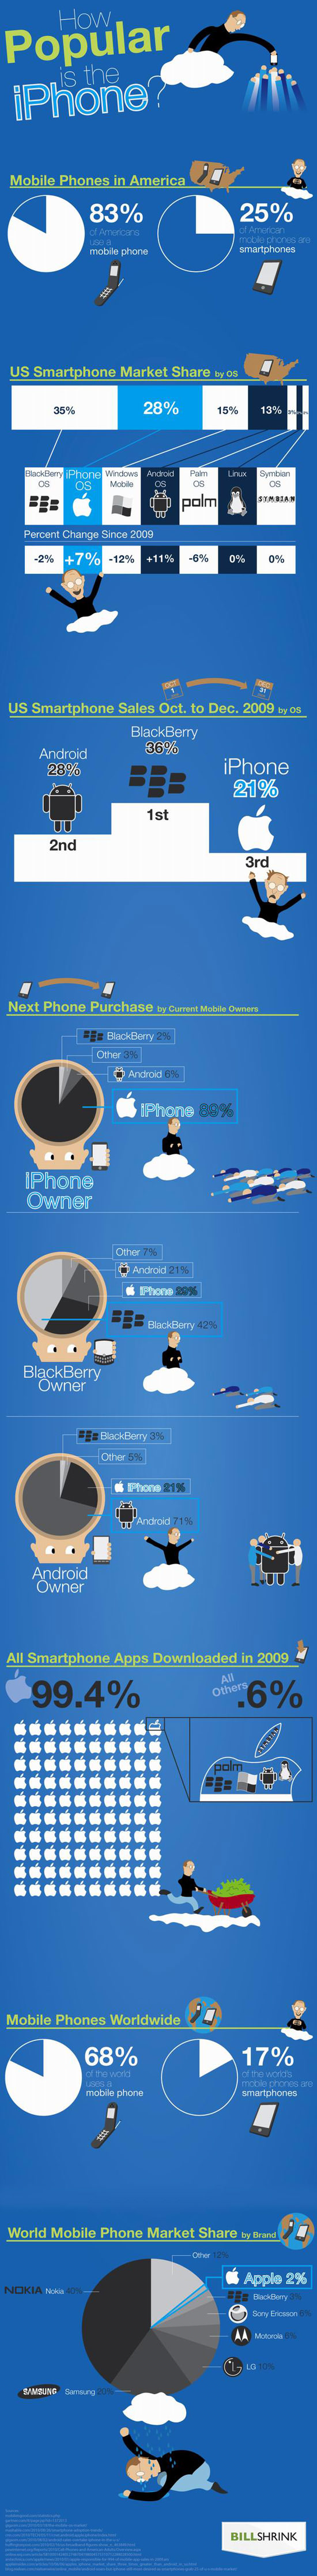 iPhone infographic Infographic: How Popular Is The iPhone?